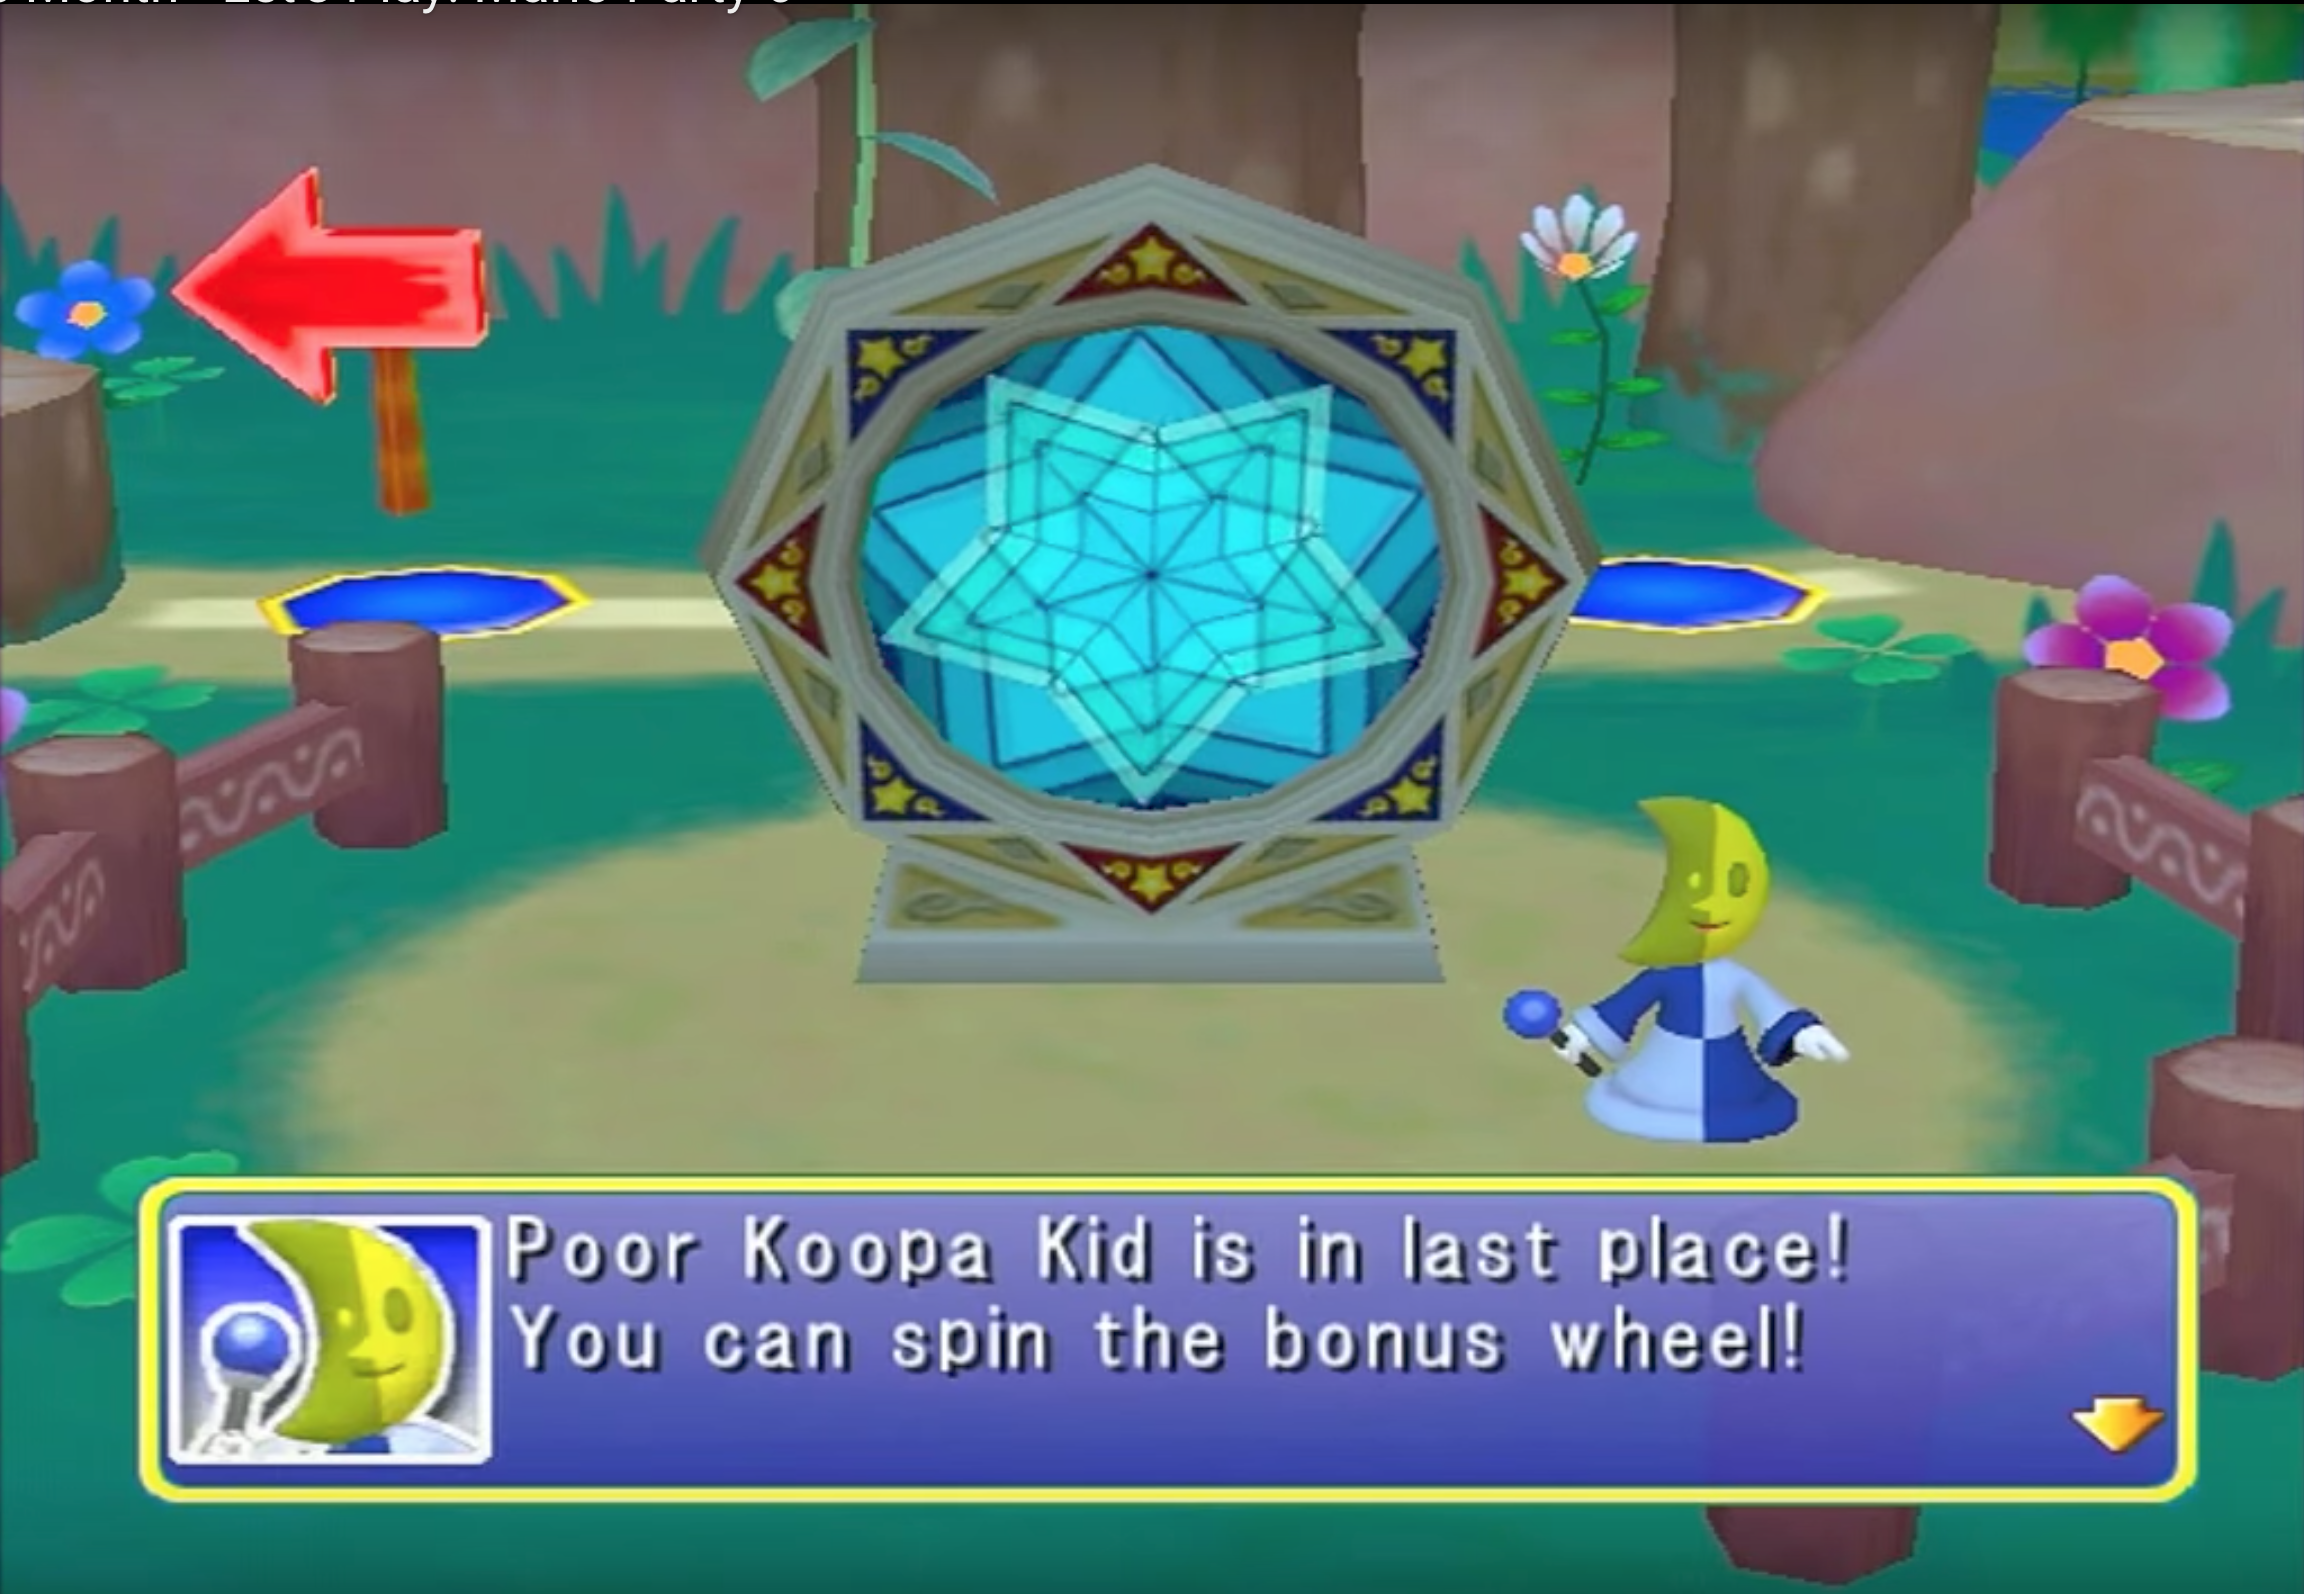 - Not pictured: Koopa Kid, the receiver of the sorry ass-beating that led to this screen in the first place.Image: TheBitBlock on YouTube